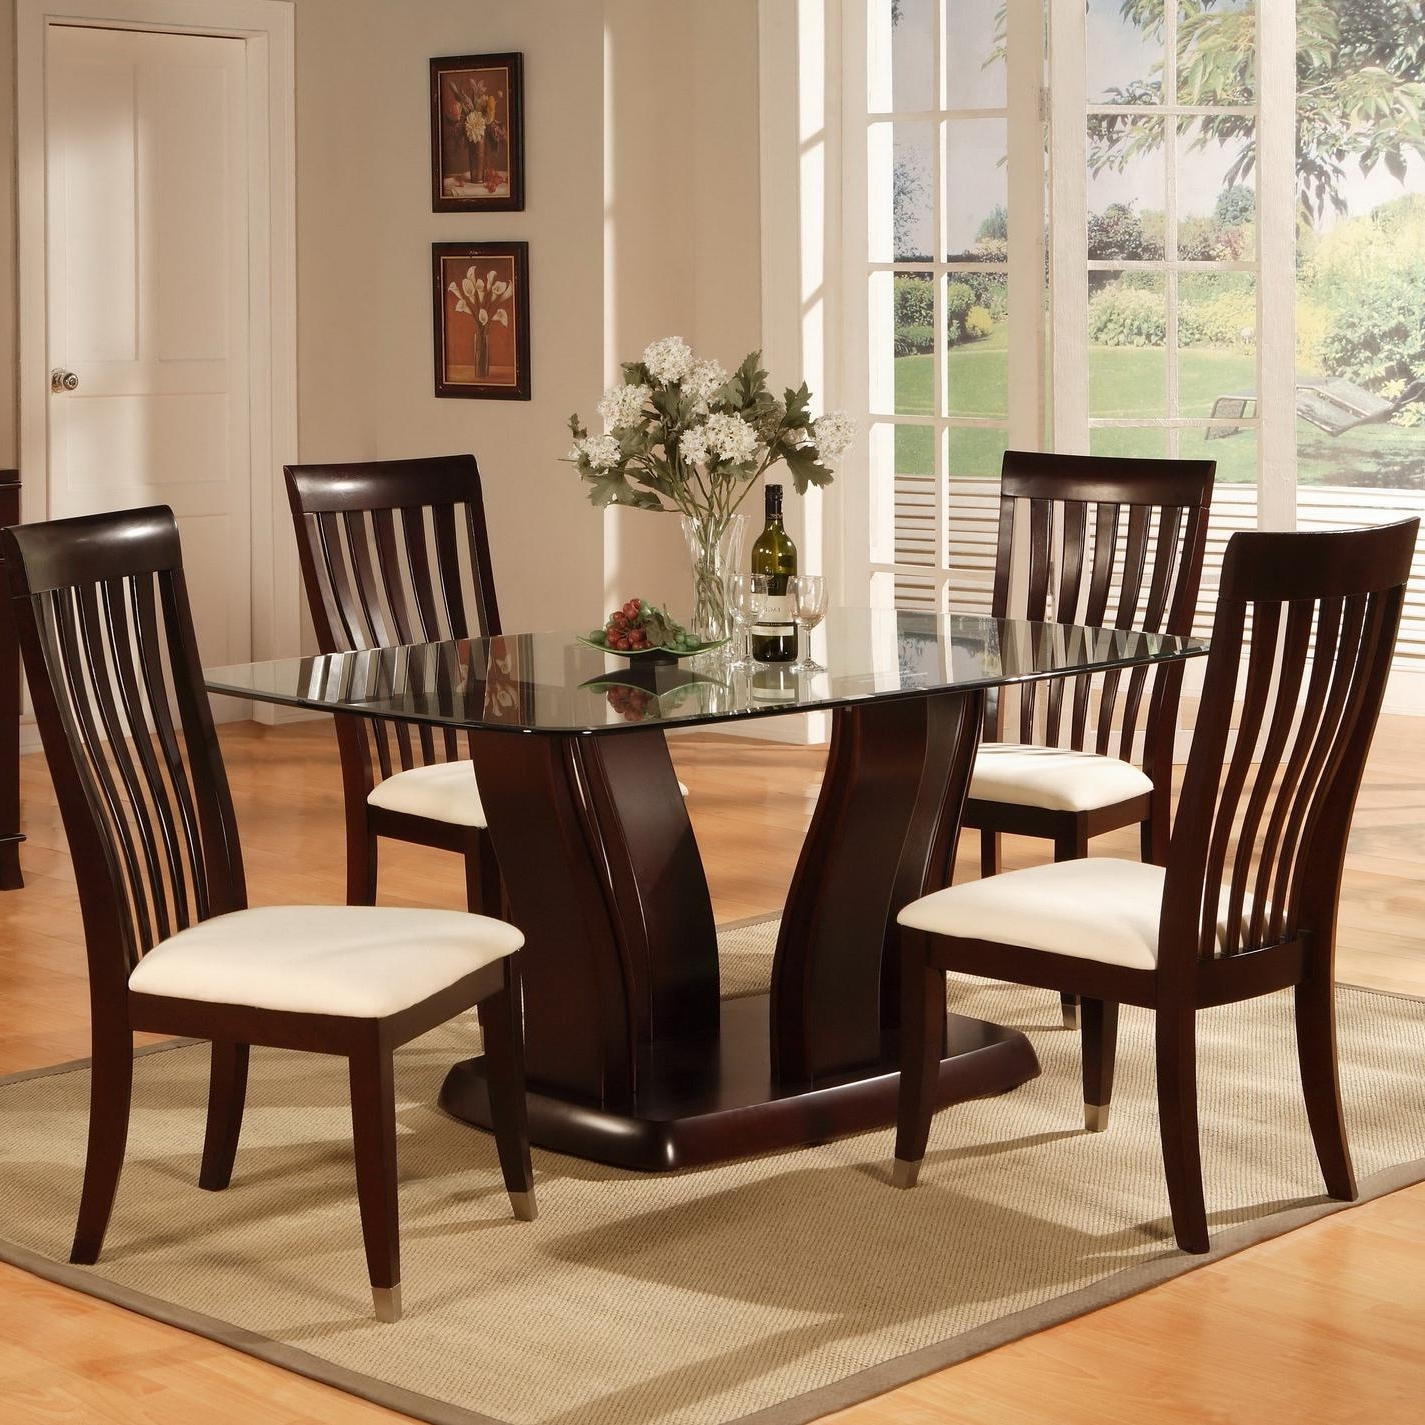 Most Recently Released New York Dining Tables Pertaining To Holland House New York 5 Piece Dining Table And Chair Set (View 10 of 25)